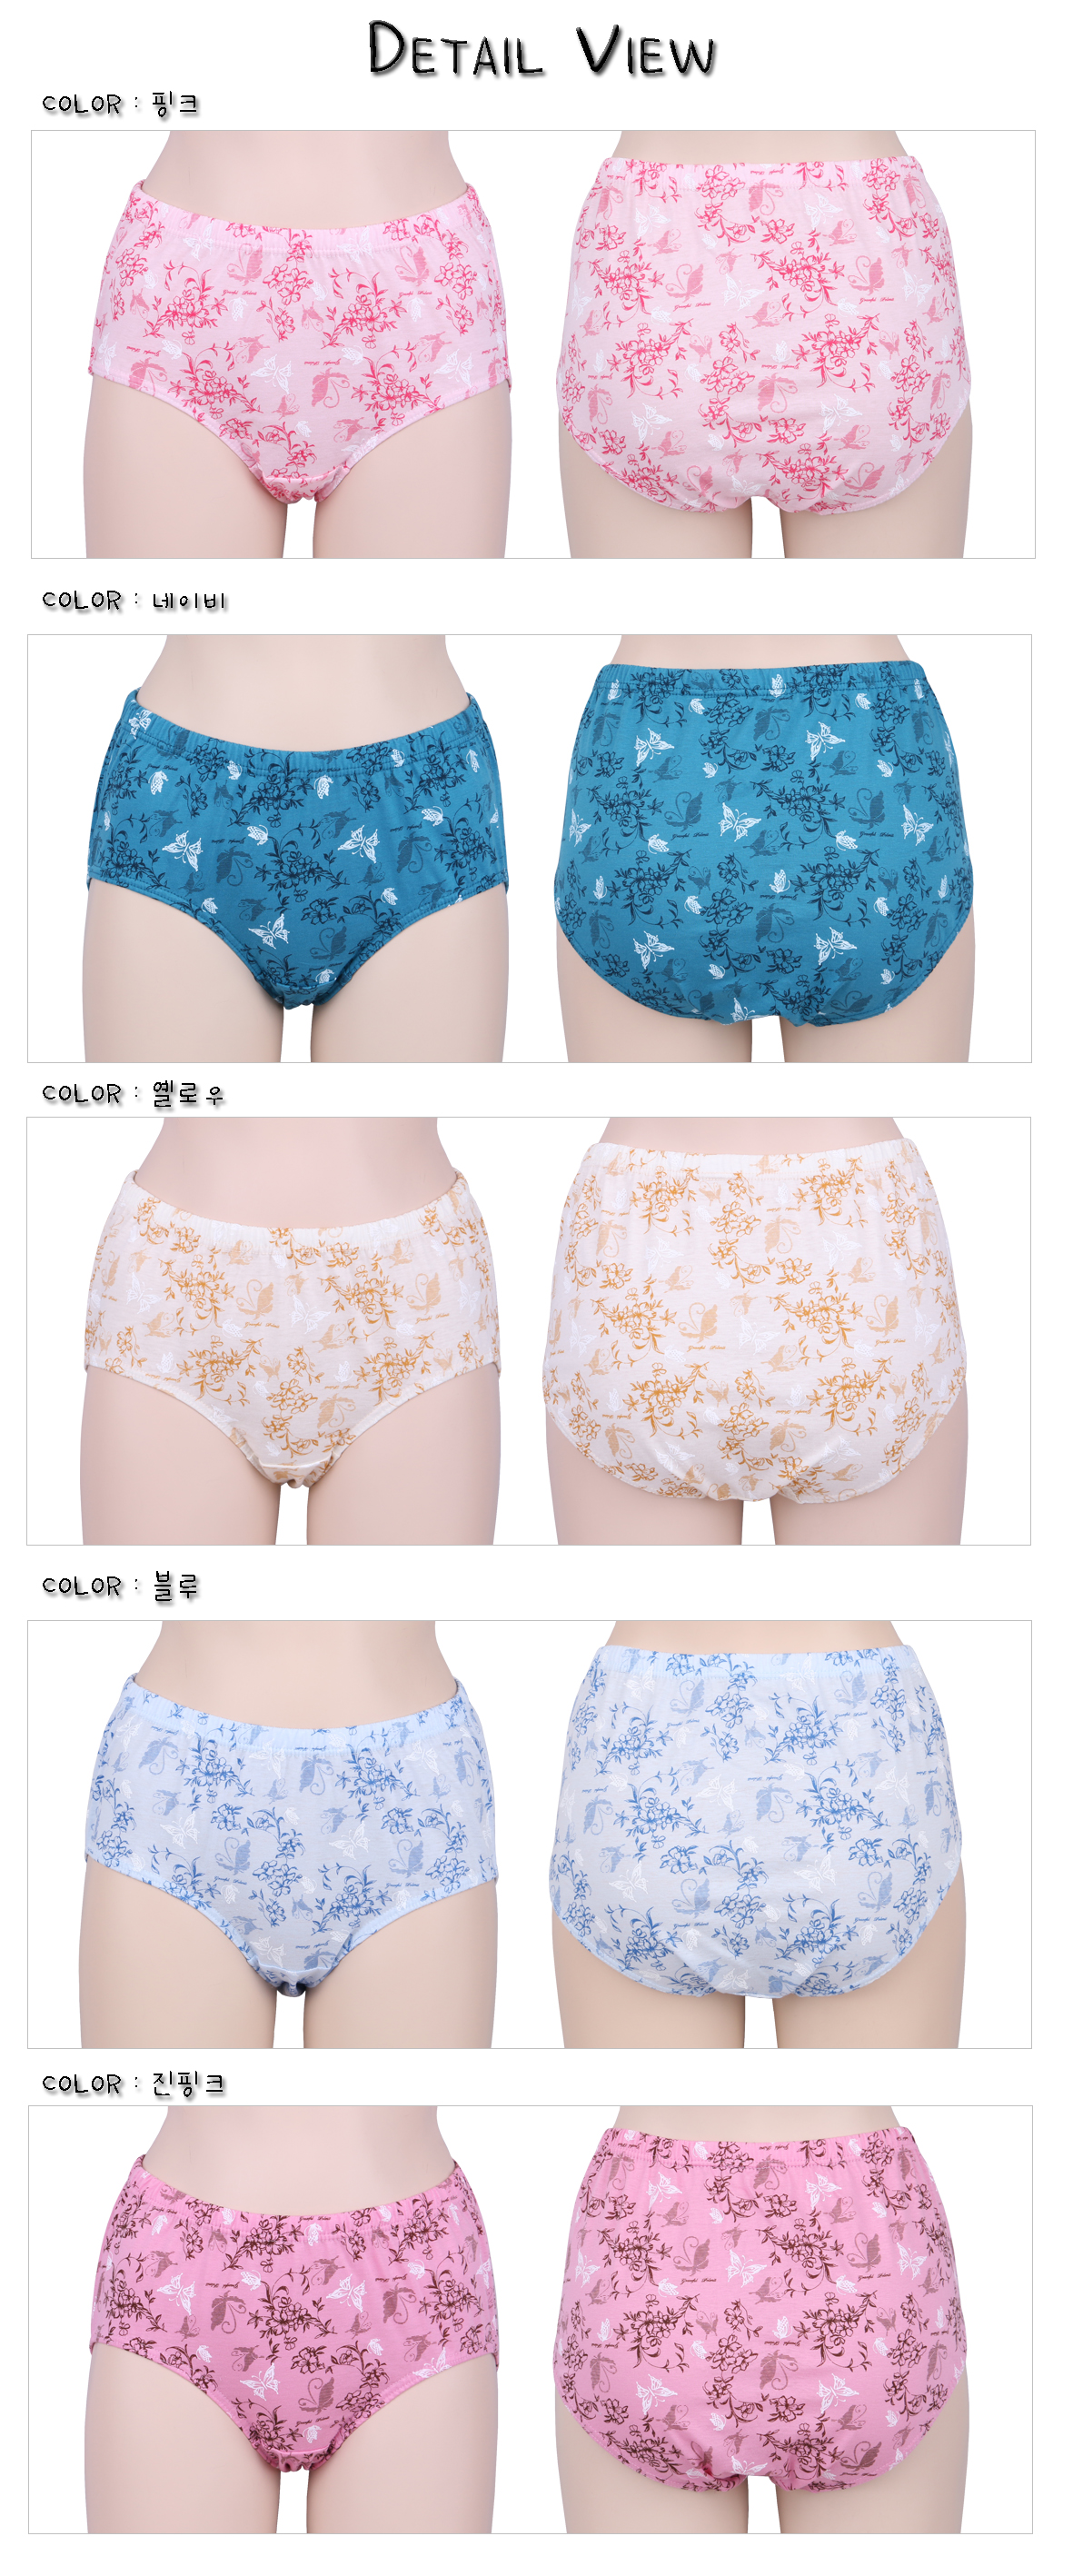 [ POLMIT ] Triangular Panty 3Set For Ladies Fancy Color